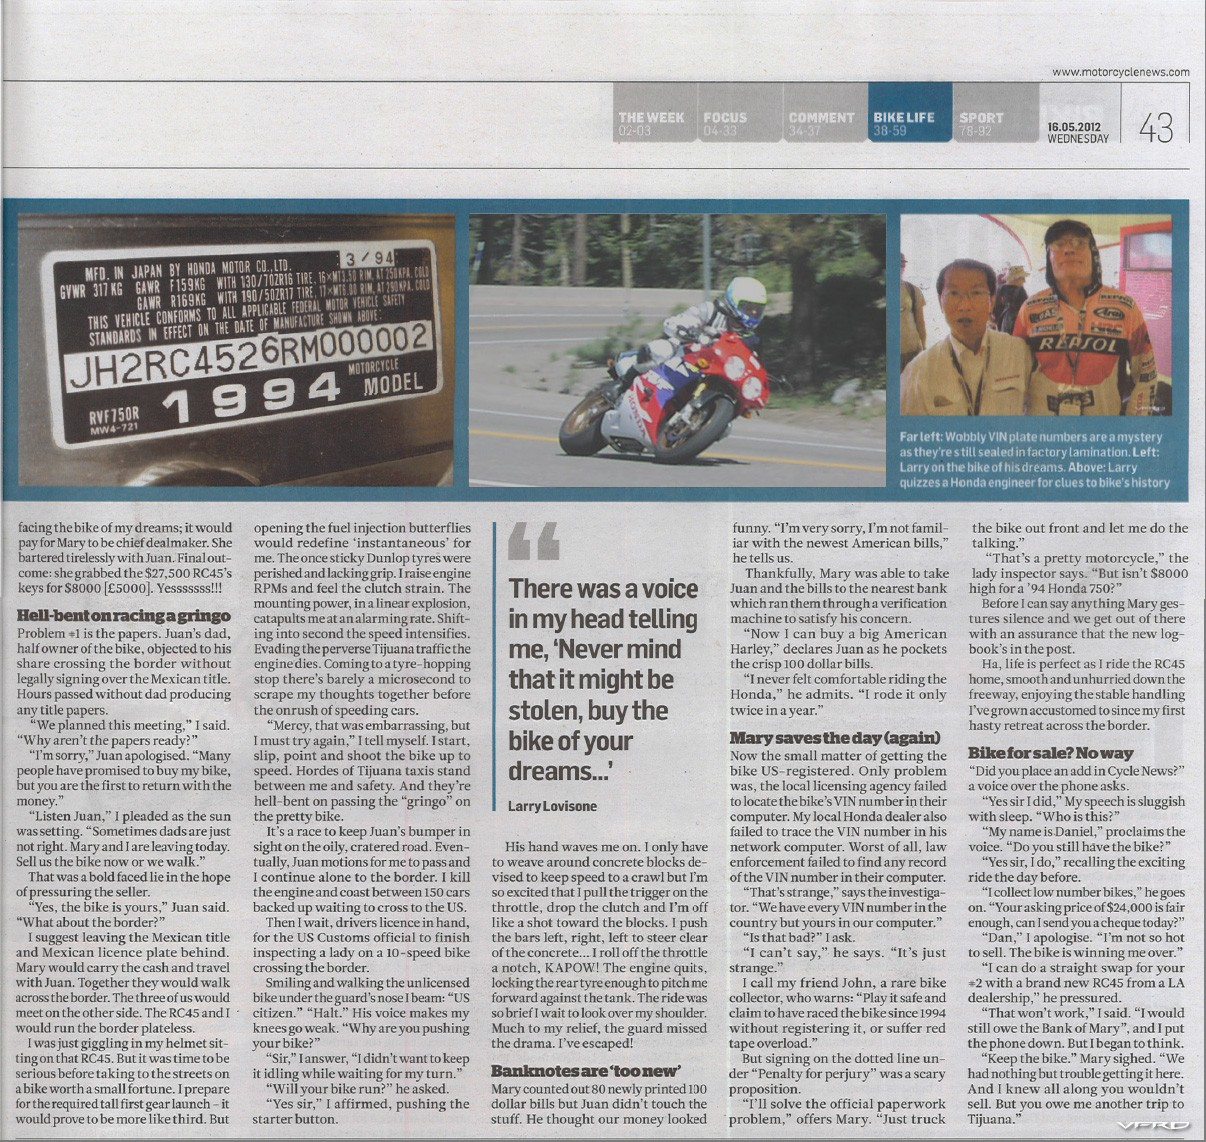 2 Wheel Ordeal Published in MCN